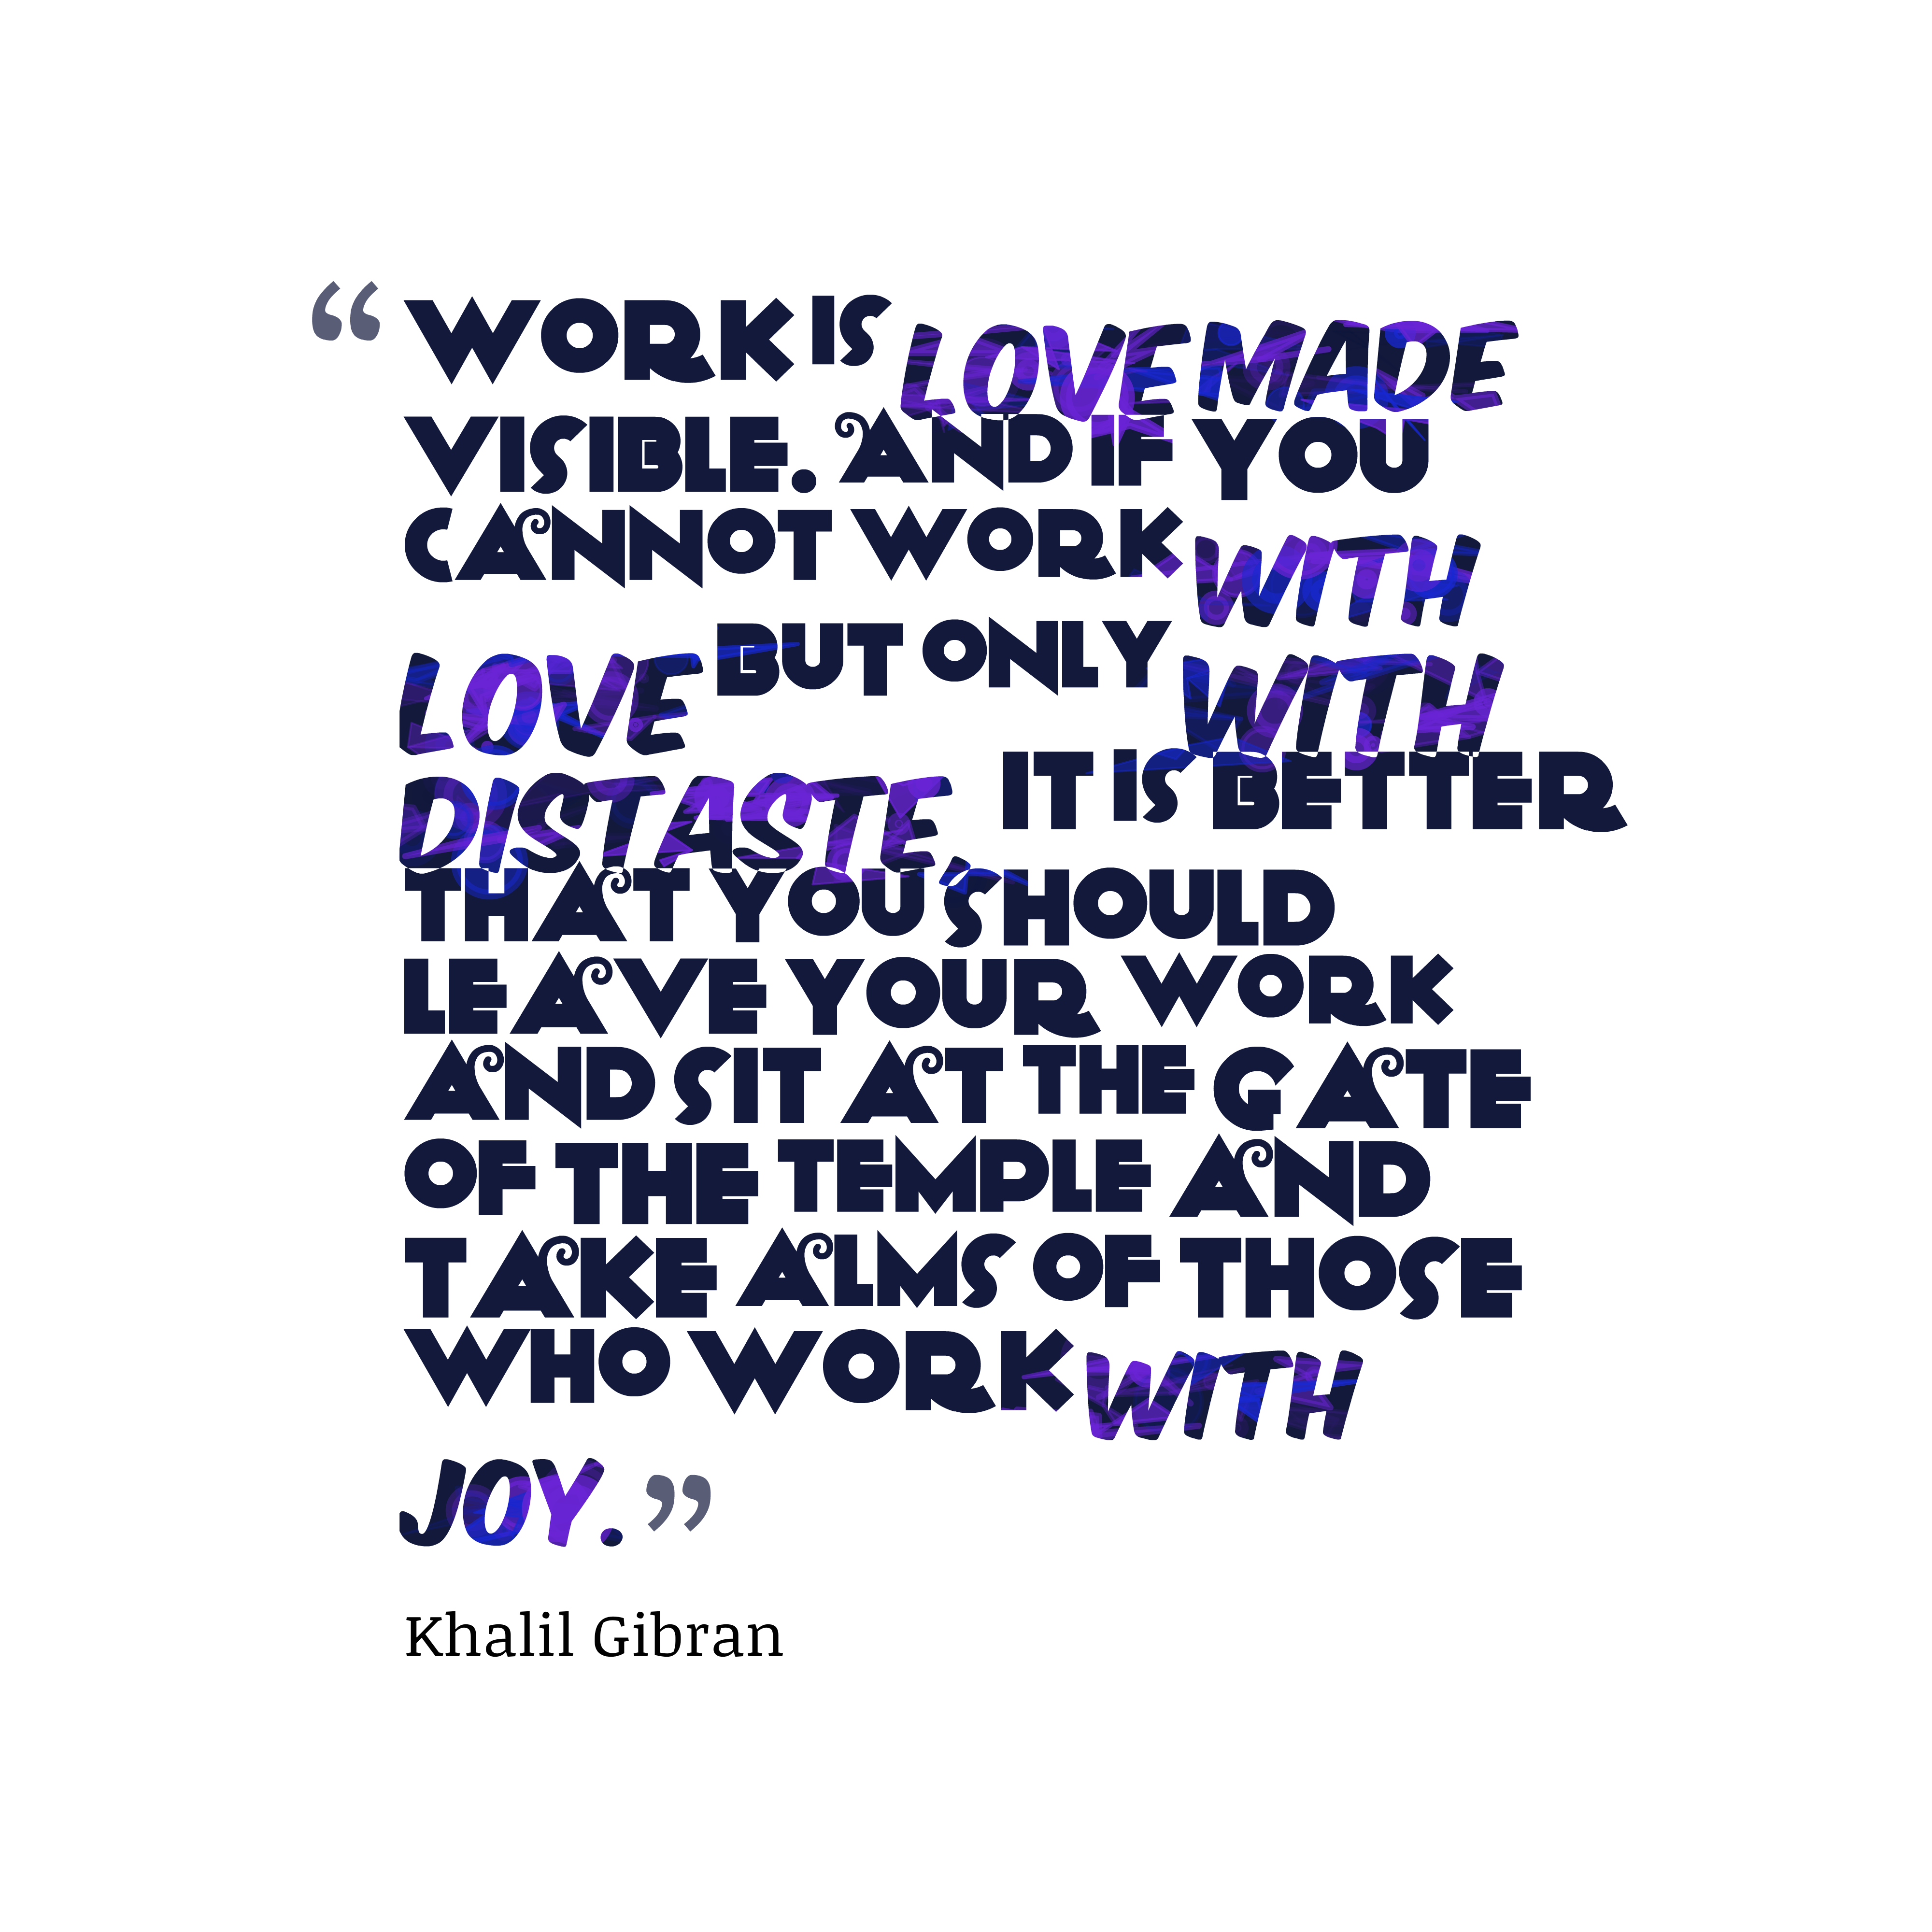 Quotes About Love: Picture » Khalil Gibran Quotes About Joy